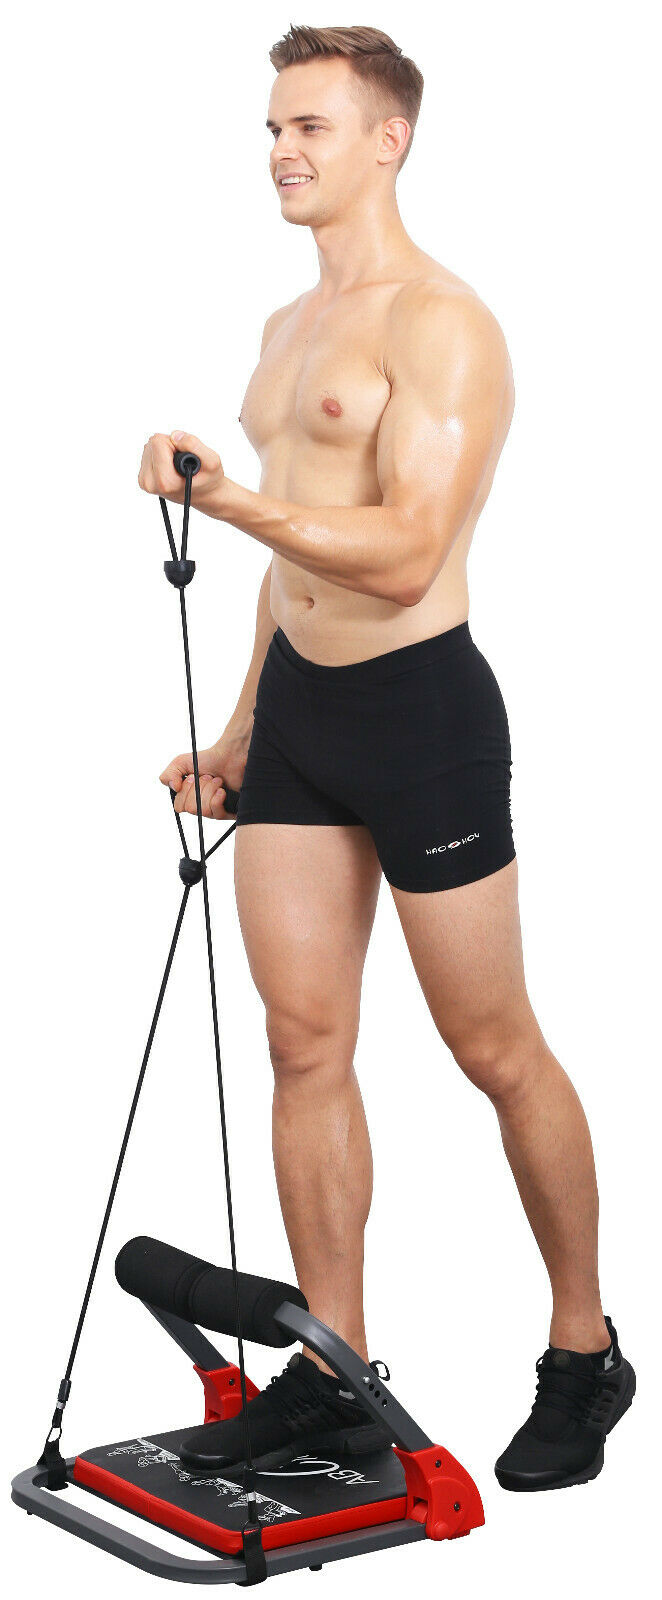 Details about  /Abdominal Crunch Machine Total Body Workout Gym Home Adjustable Resistance Bands